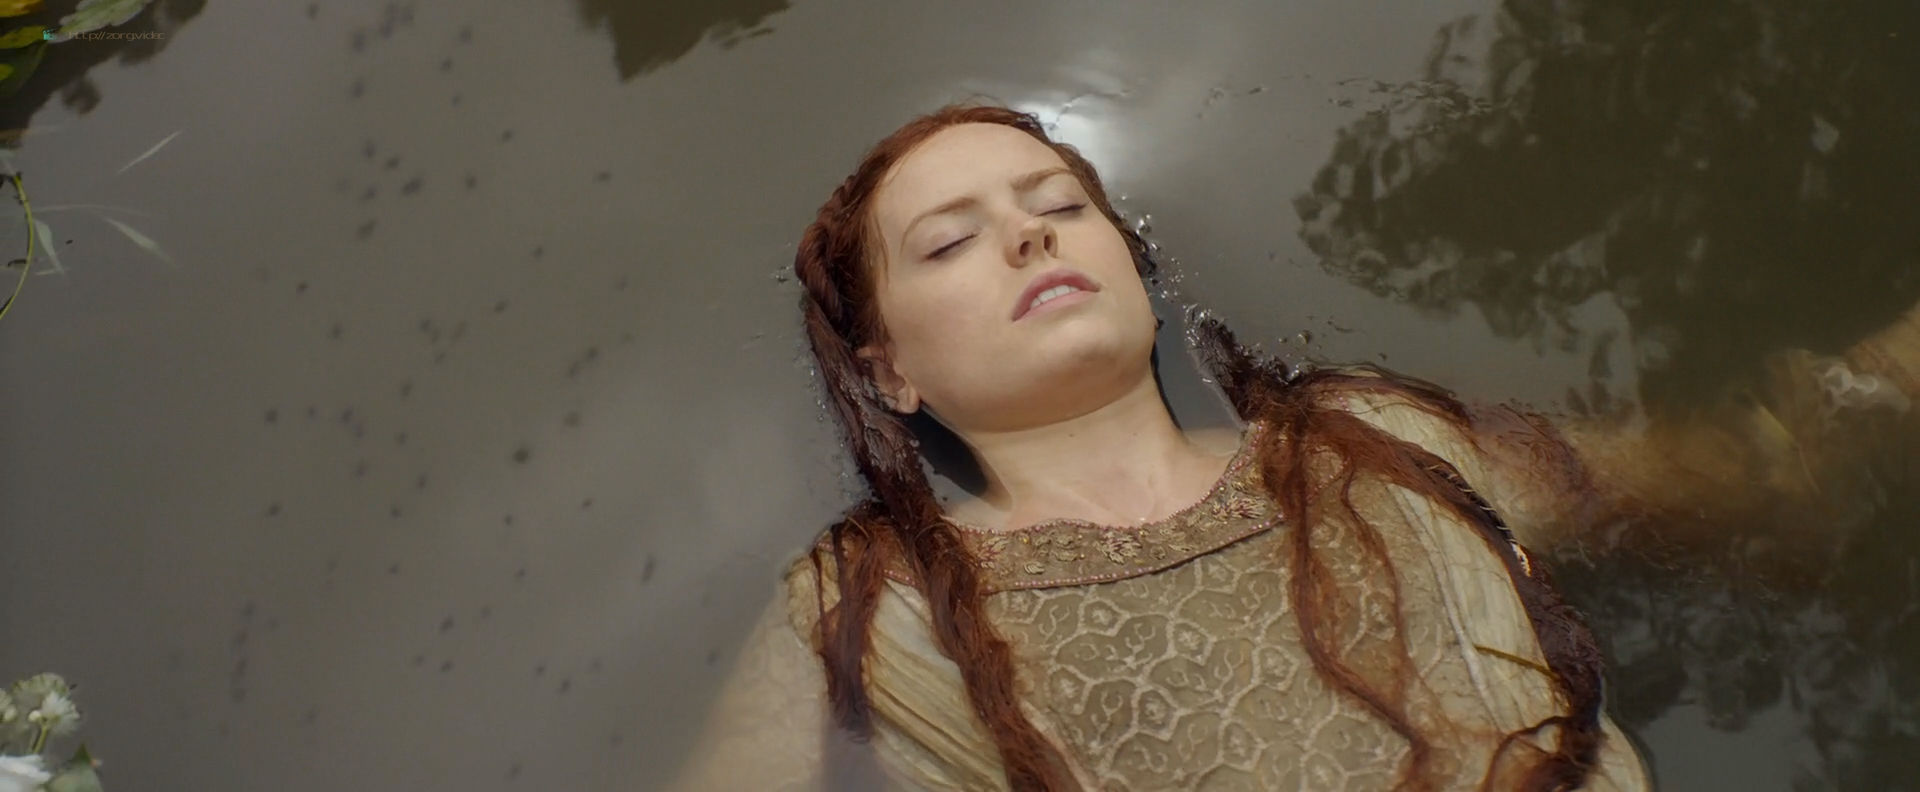 Daisy Ridley hot and sexy - Ophelia (2019) HD 1080p (14)